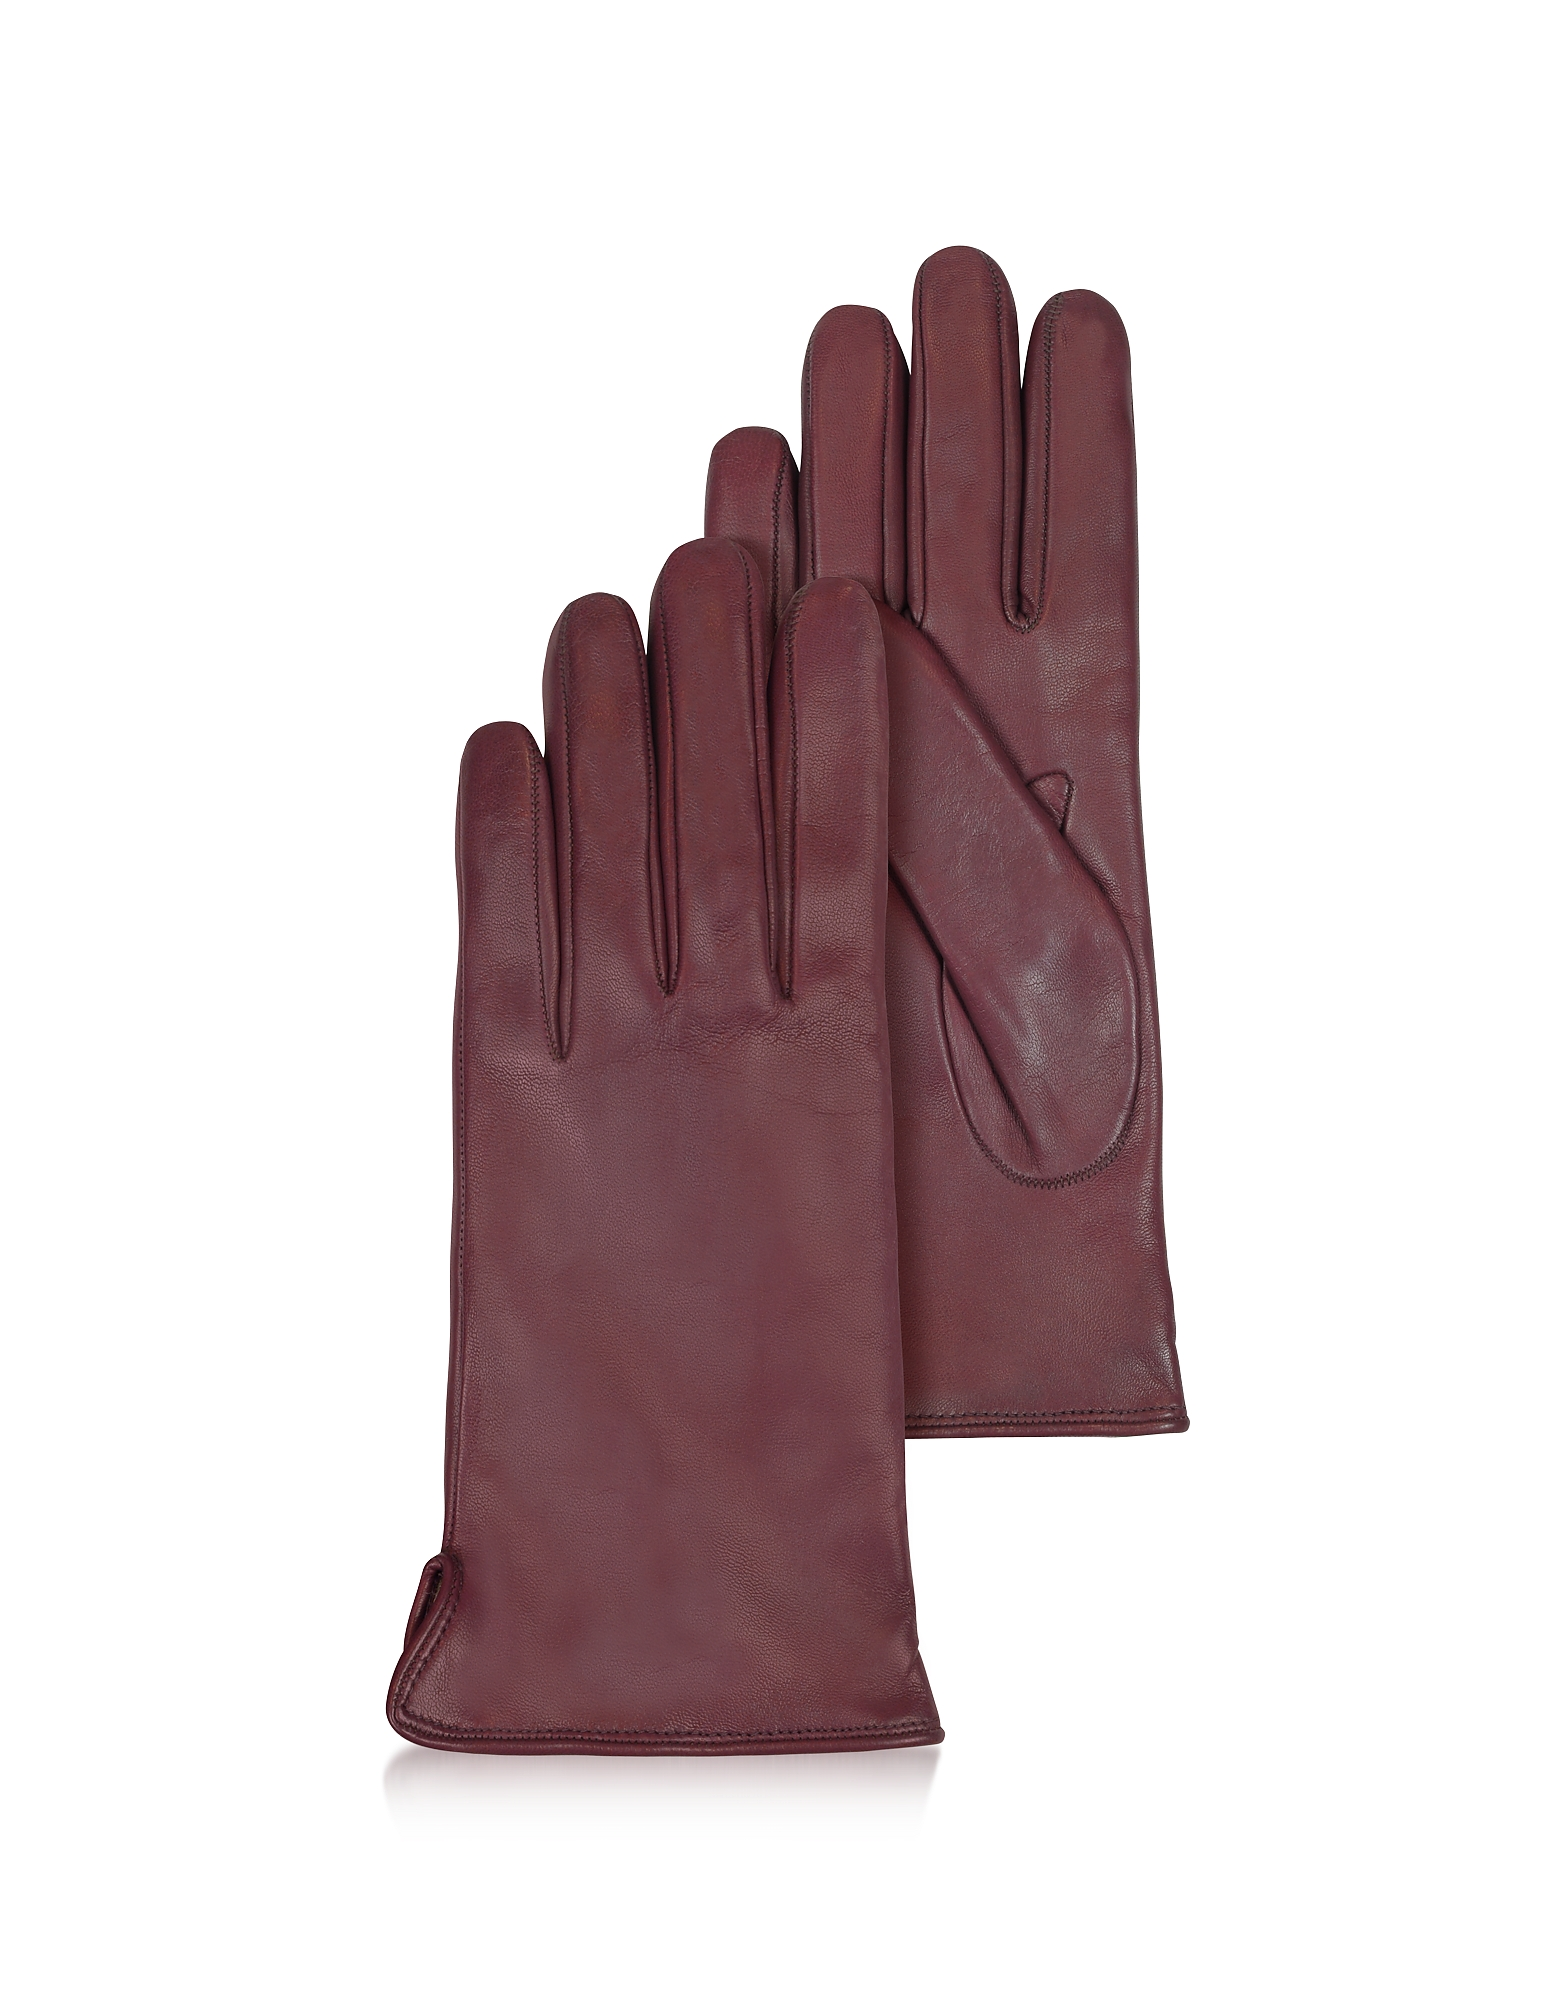 Forzieri Designer Women's Gloves, Women's Burgundy Cashmere Lined Italian Leather Gloves